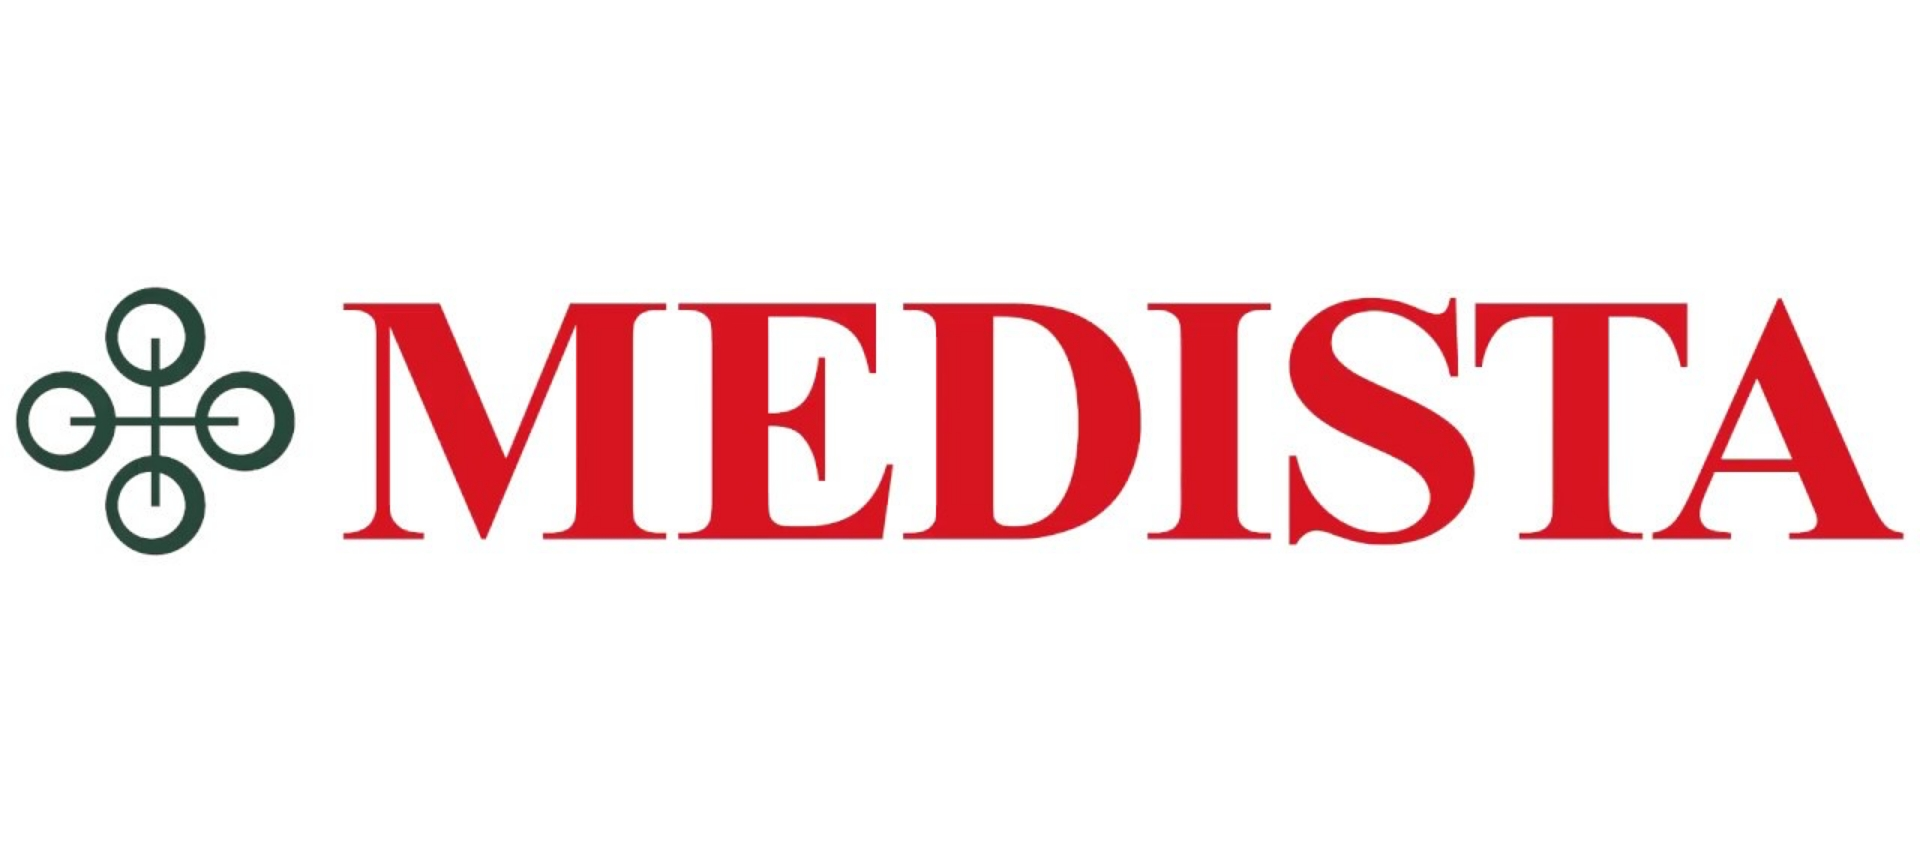 Medista and HemoClear partnership